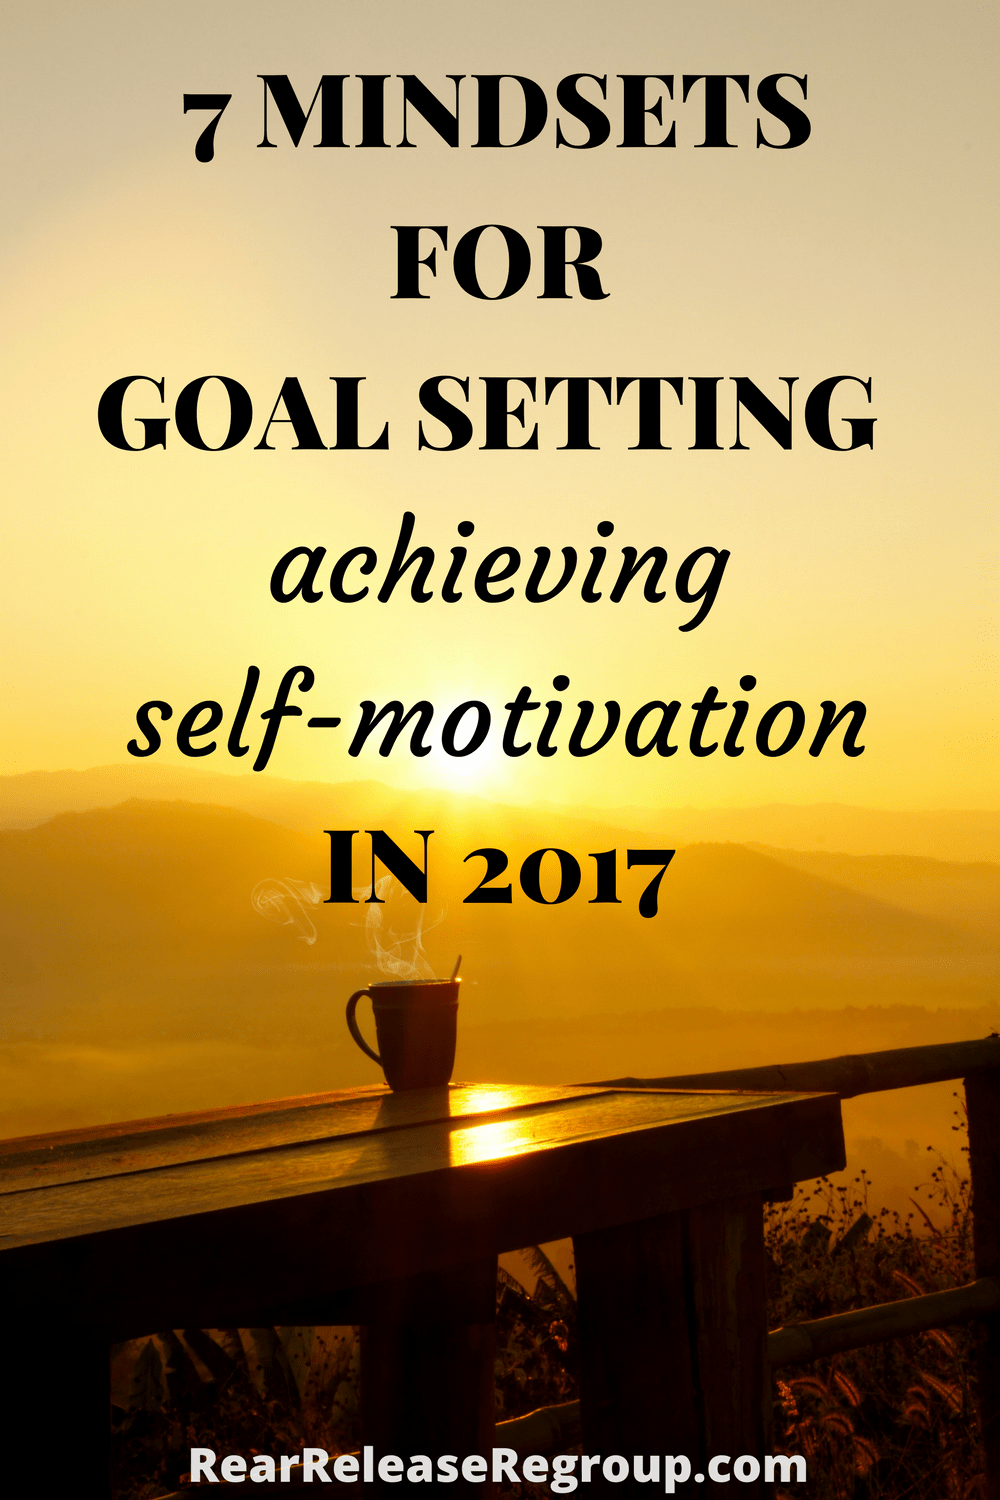 7 mindsets for goals; achieving self-motivation in 2017. How to find motivation to carry through personal long-term goals; inspiration for your spirit.